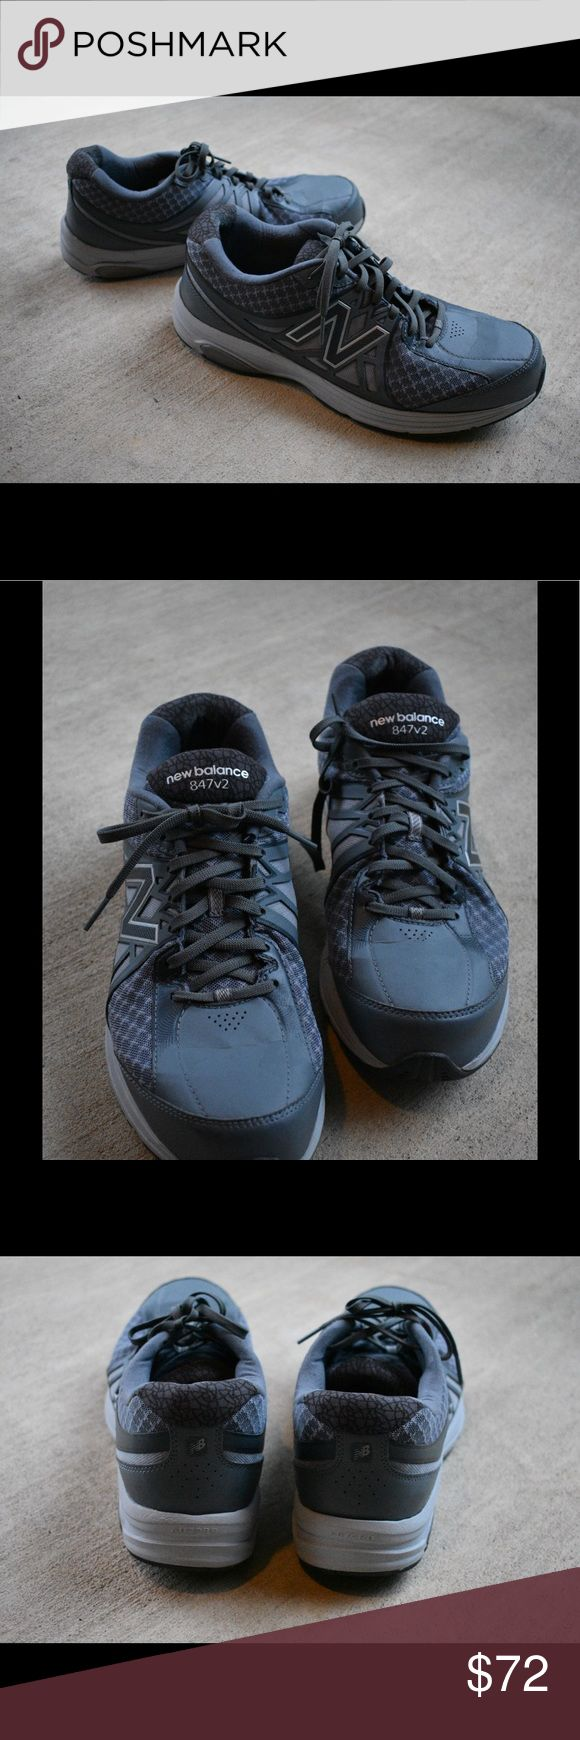 New Balance 847v2 Walking Shoes - Men New Balance Walking Shoes in size US 11. These are a dark Grey. They are slightly used, but the outside of the shoe is in good condition. There is one tear in the interior fabric near the heel. New Balance Shoes Athletic Shoes